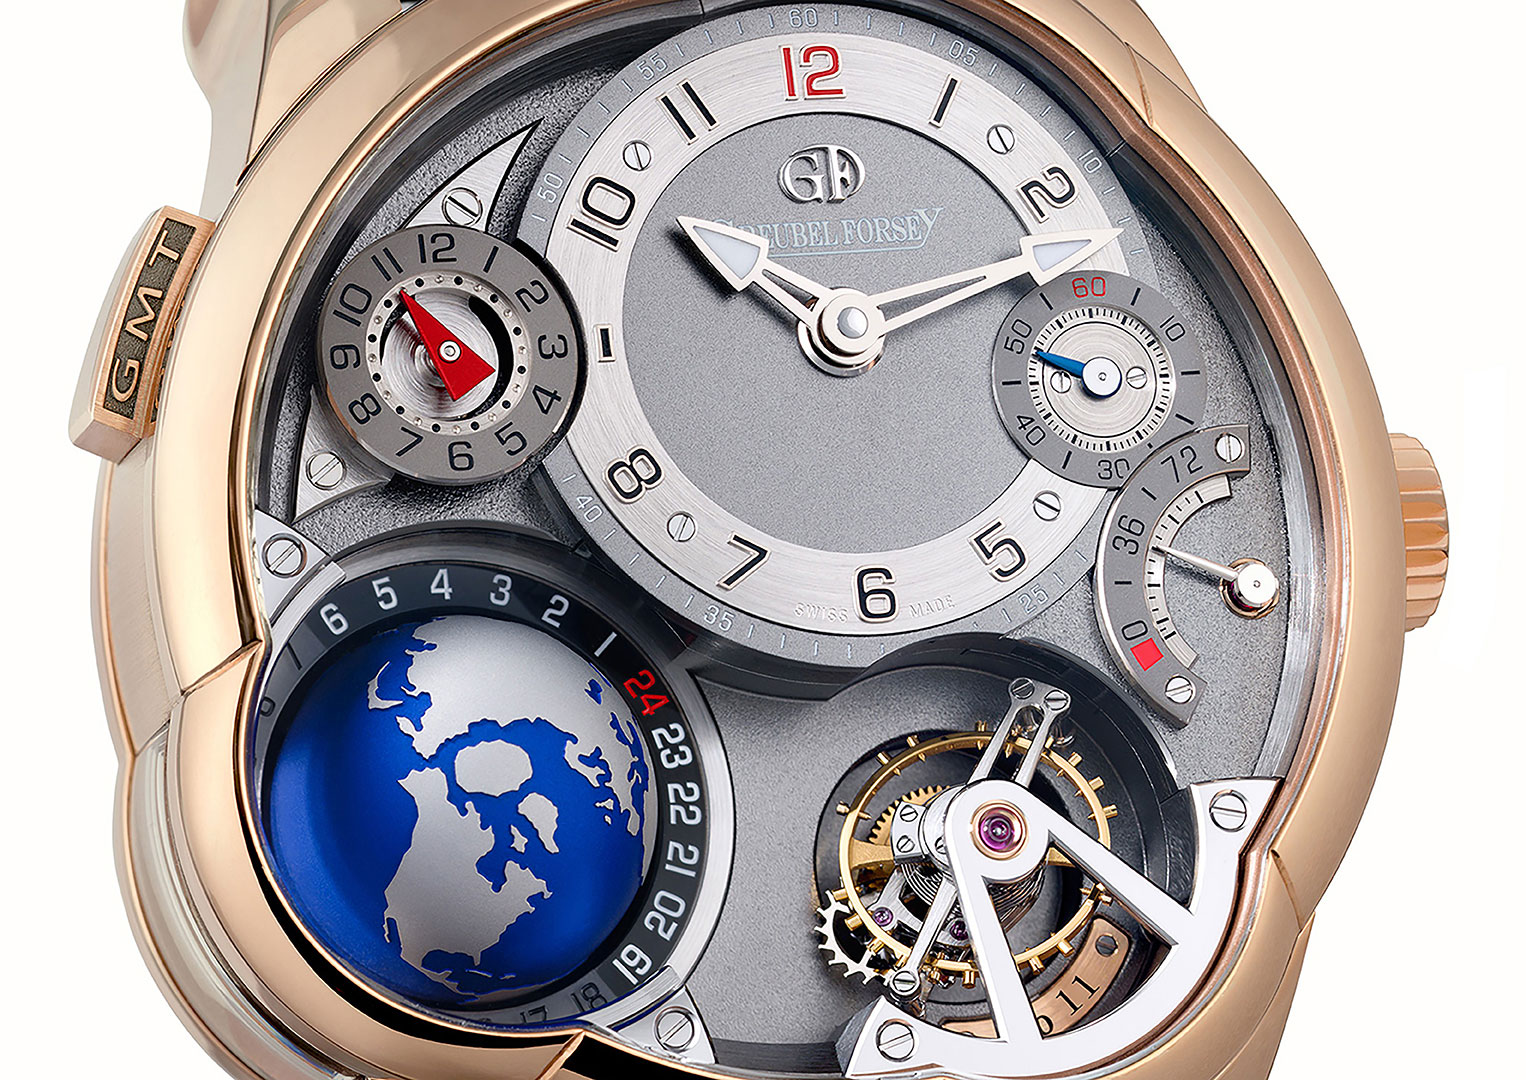 A Greubel Forsey GMT Tourbillon in rose gold